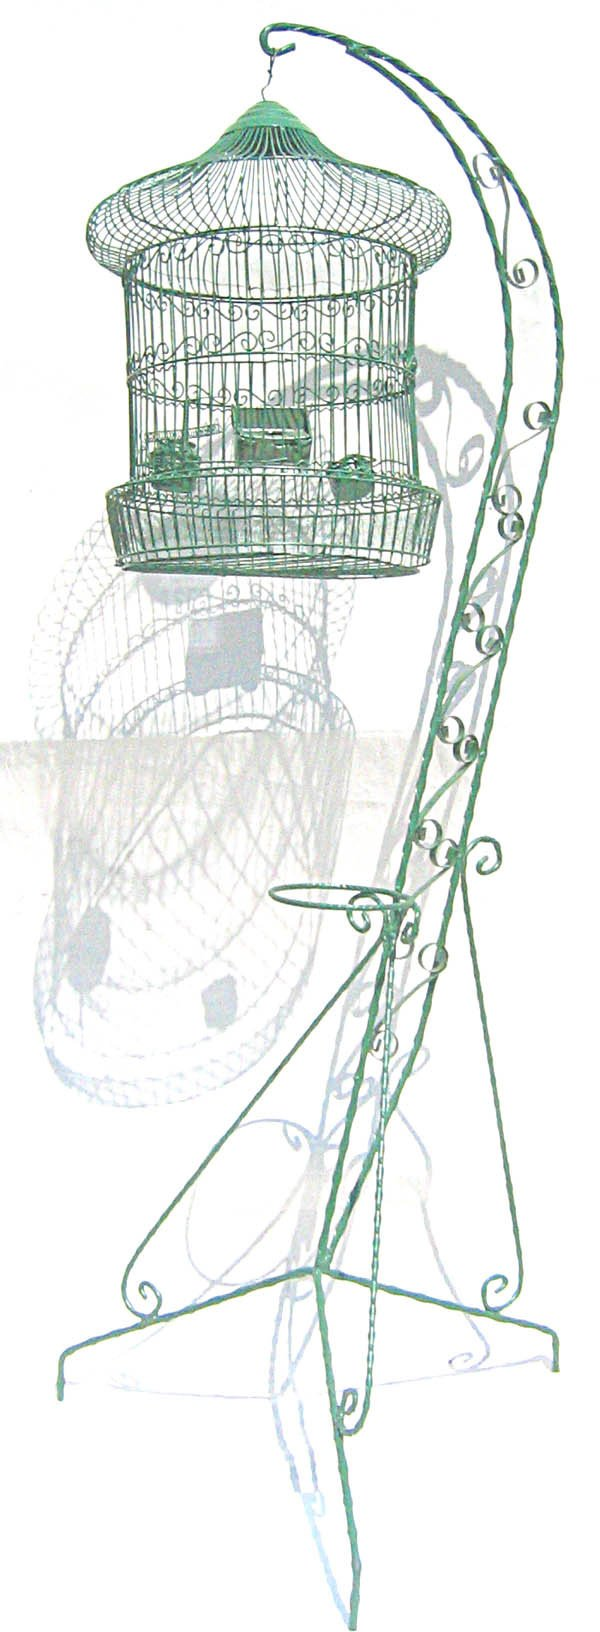 3009: Floor stand iron bird cage